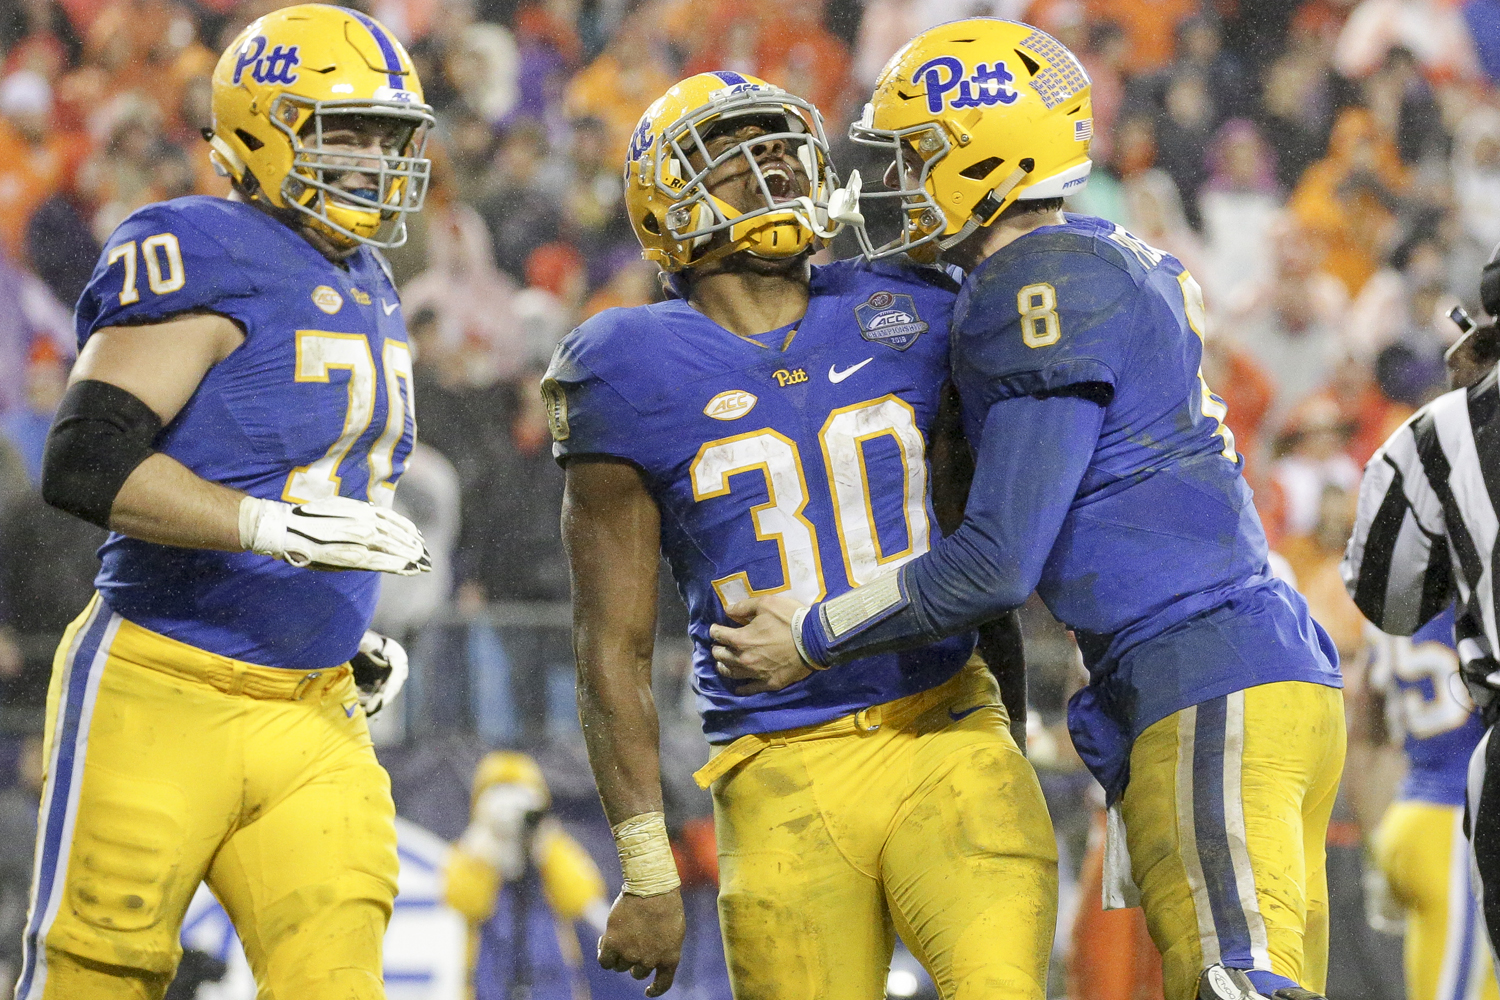 Kenny Pickett (8) and Qadree Ollison (30) celebrate after a successful play during the team's loss to Clemson in the ACC Championship Game.